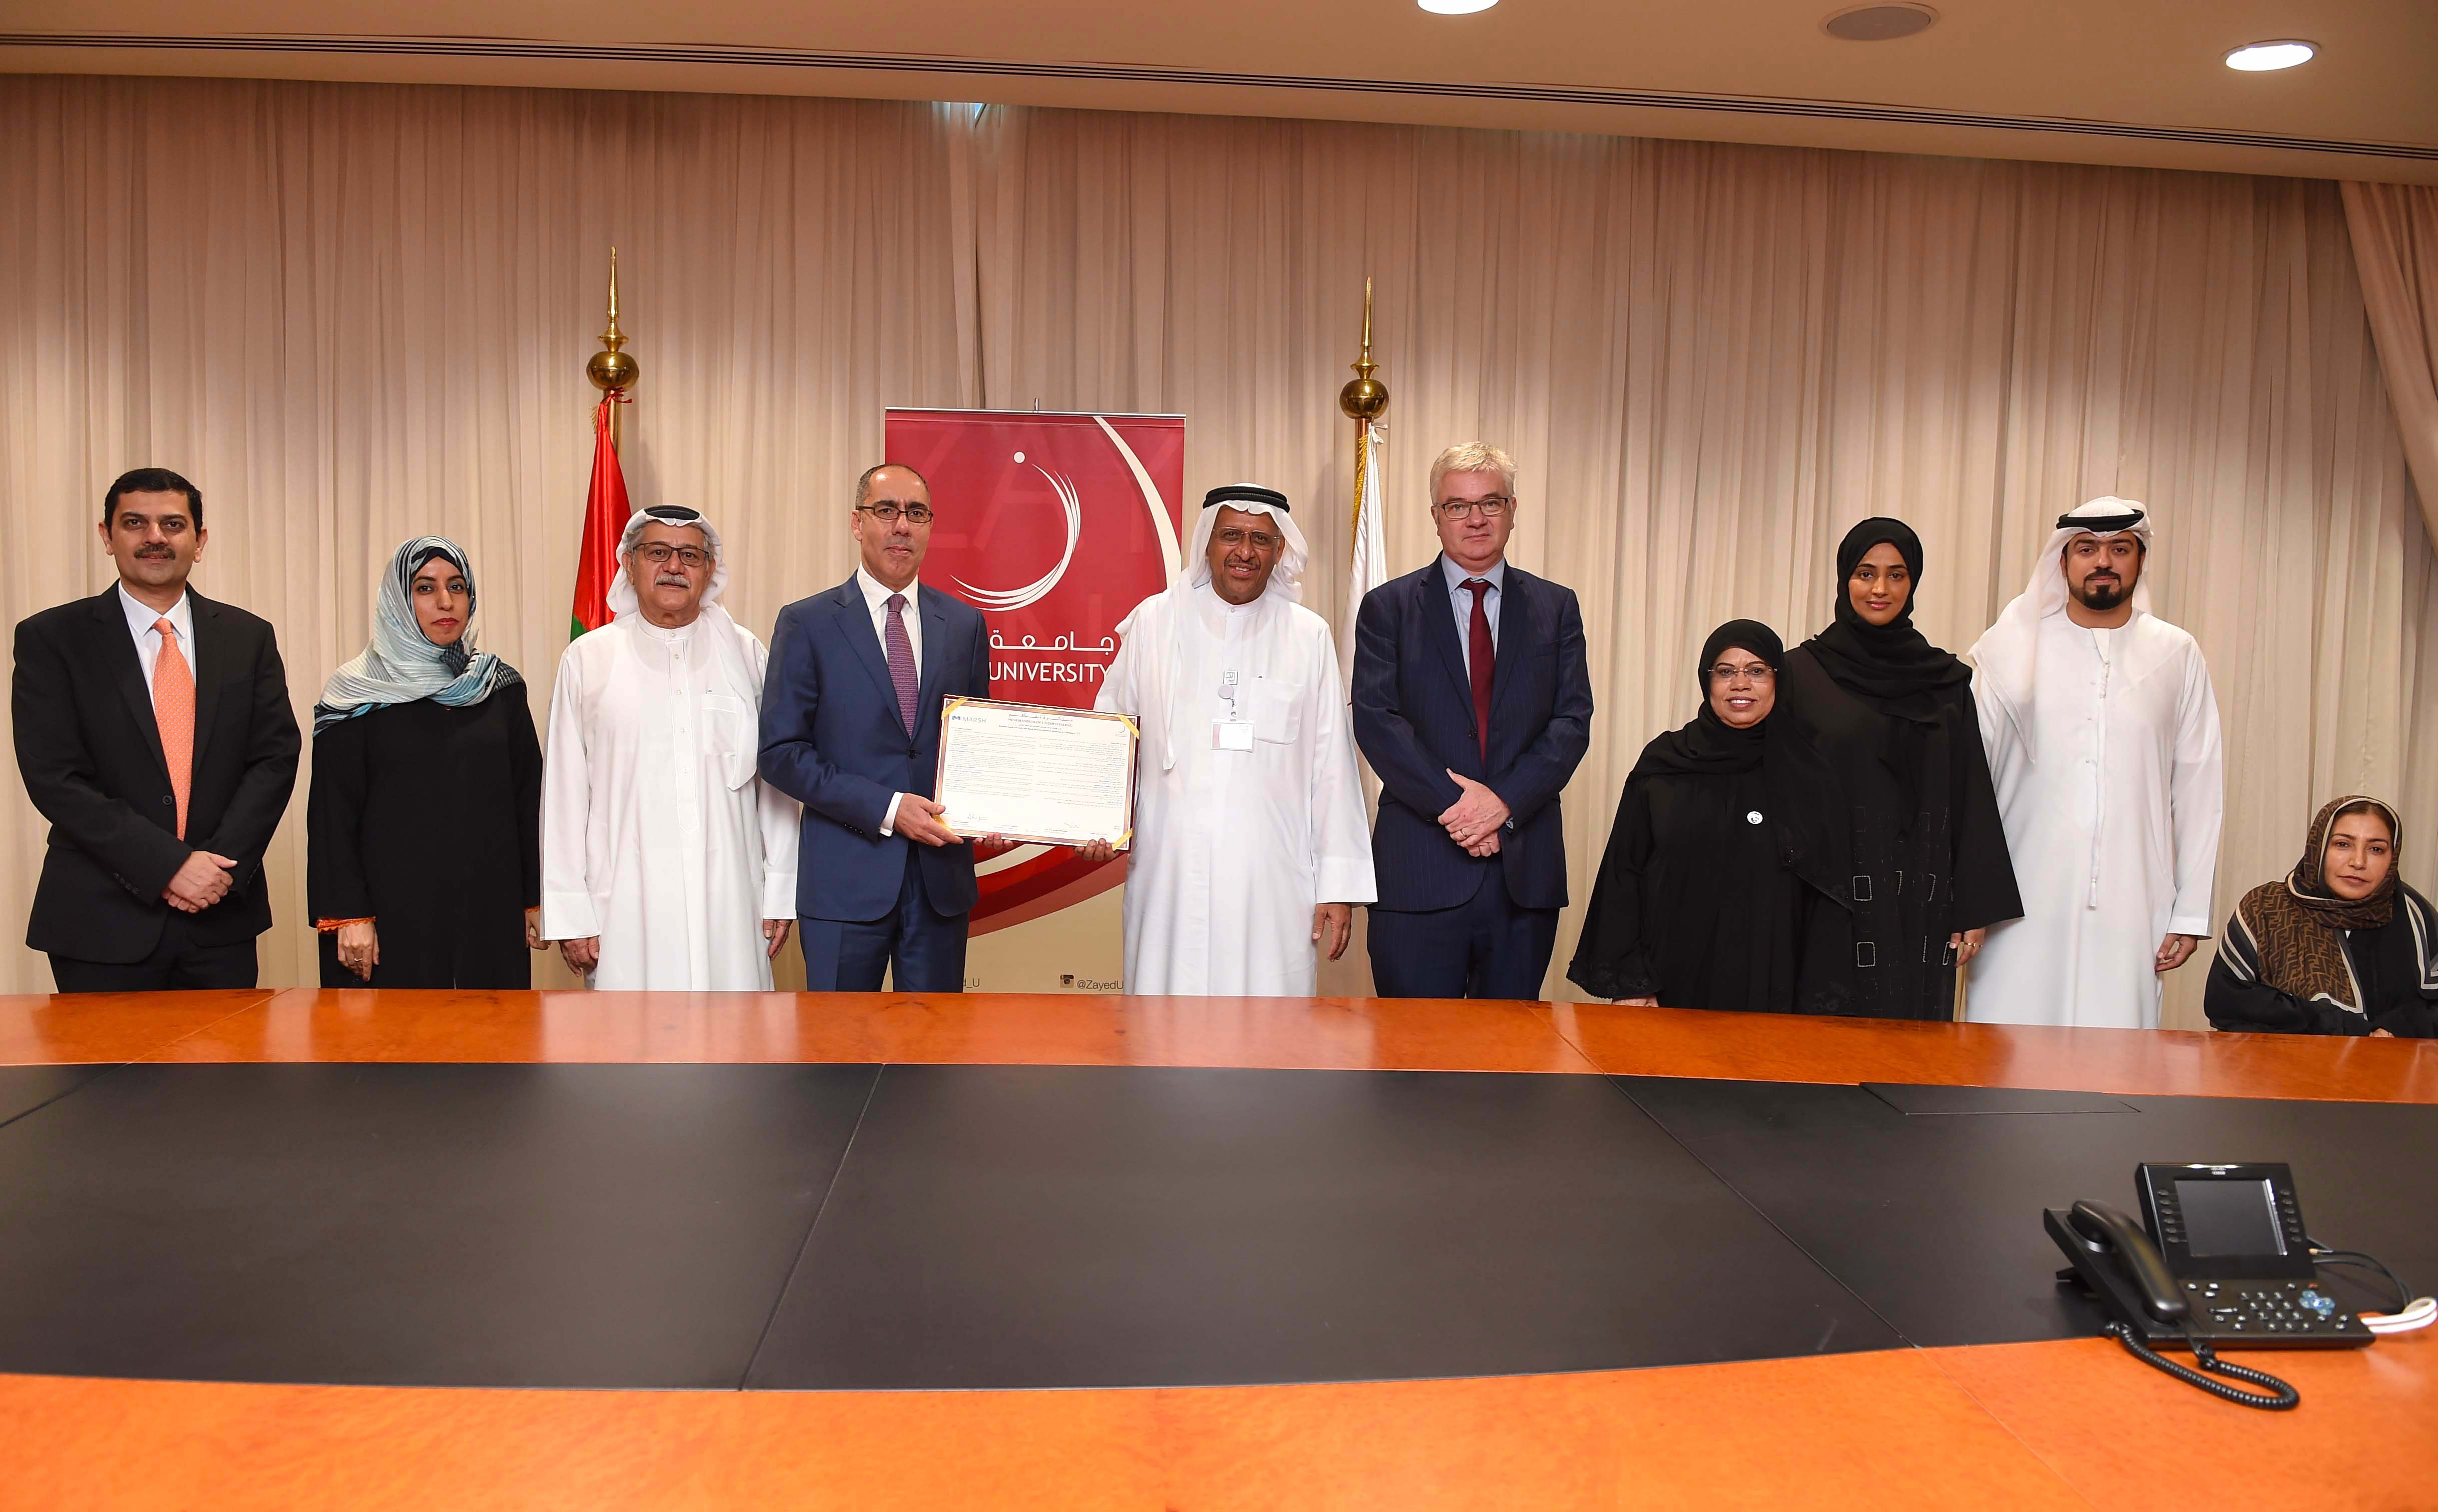 zayed university, marsh to support 'students of determination' 2